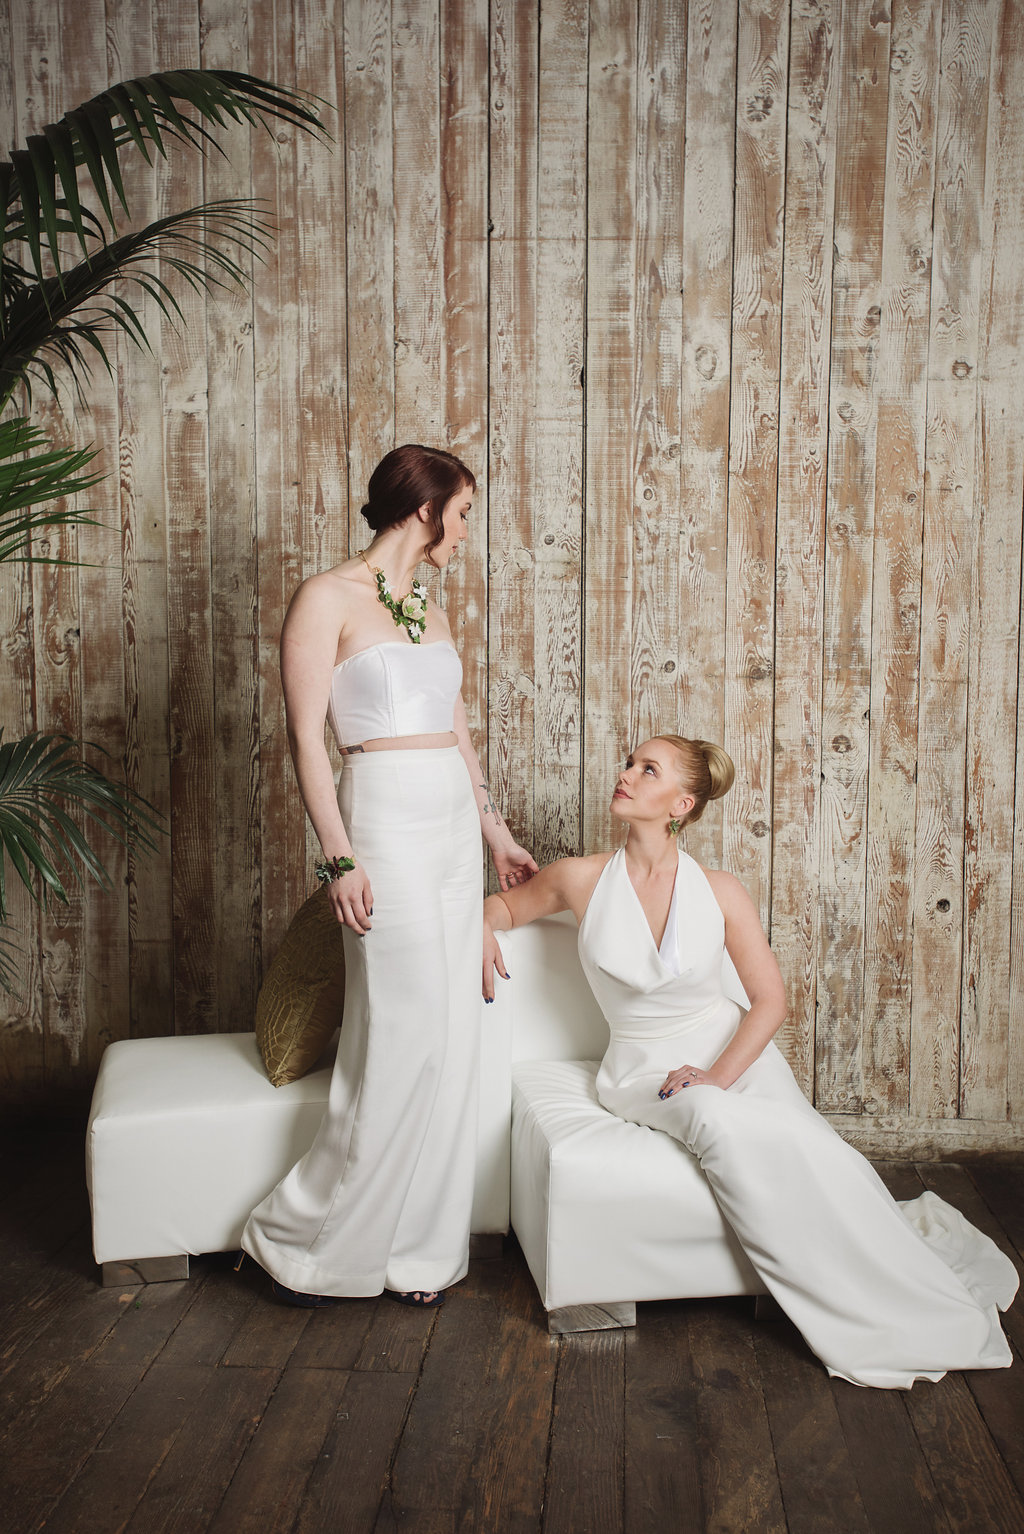 Bridal pantsuit for gay wedding by French Knot Couture